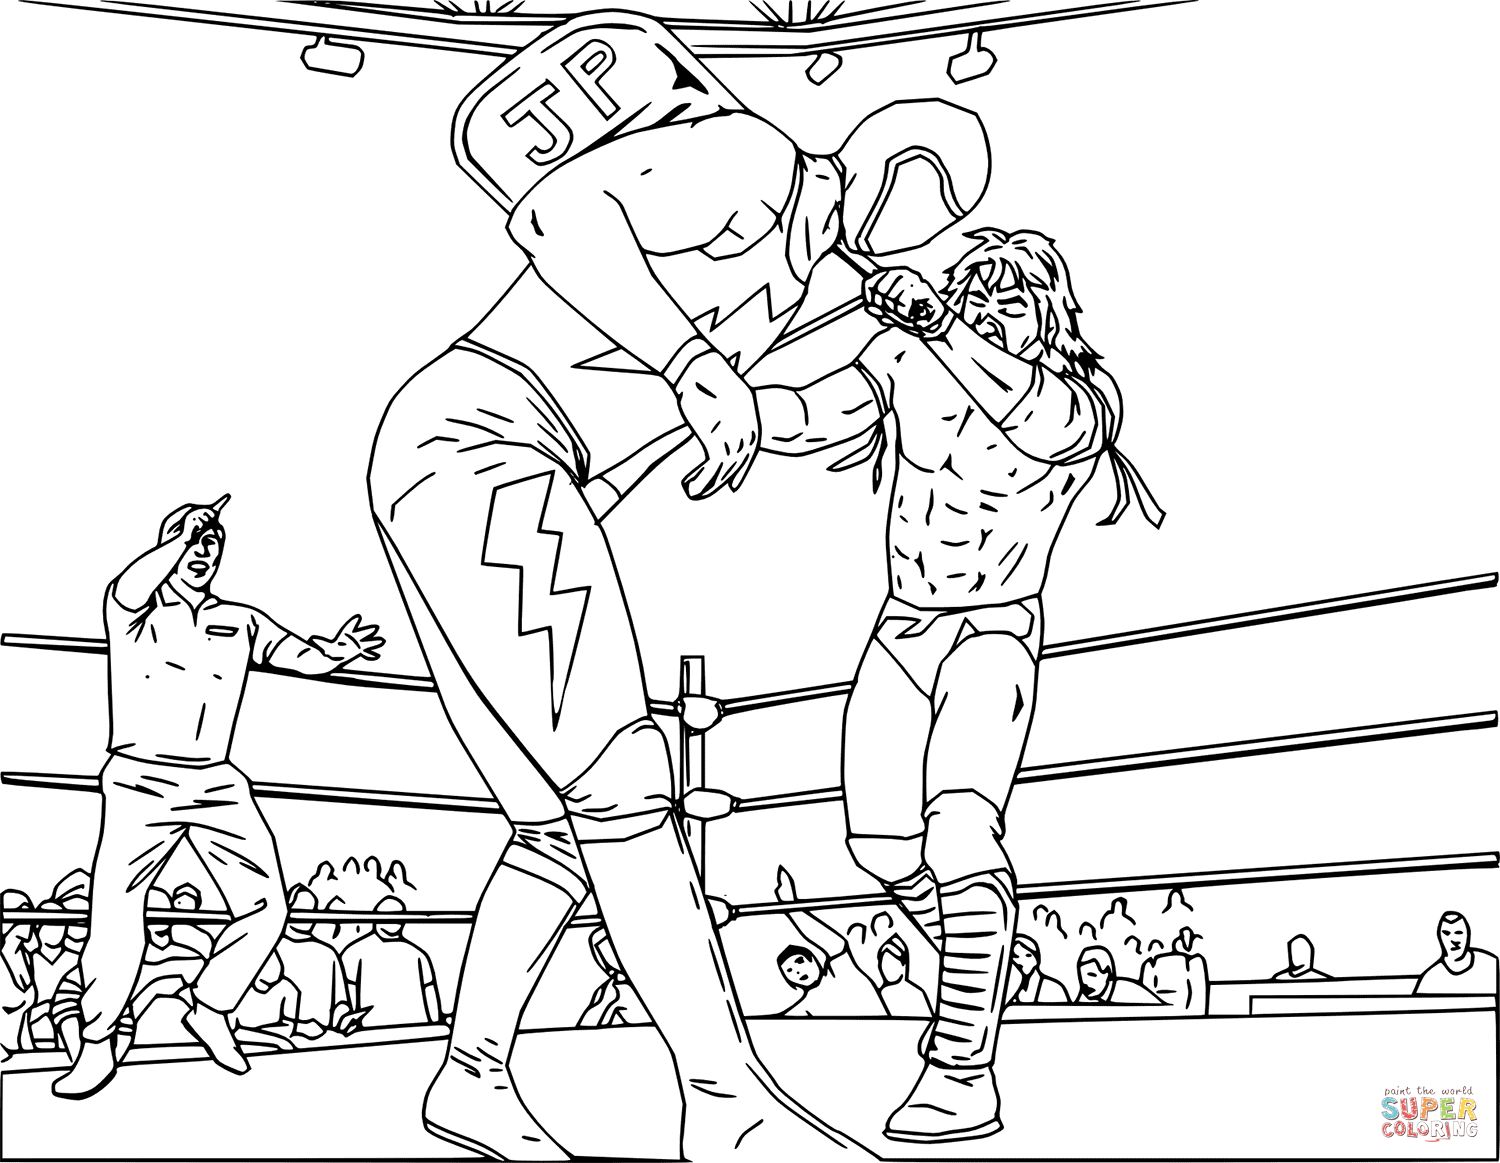 Wwe Wrestling Fight Coloring Page